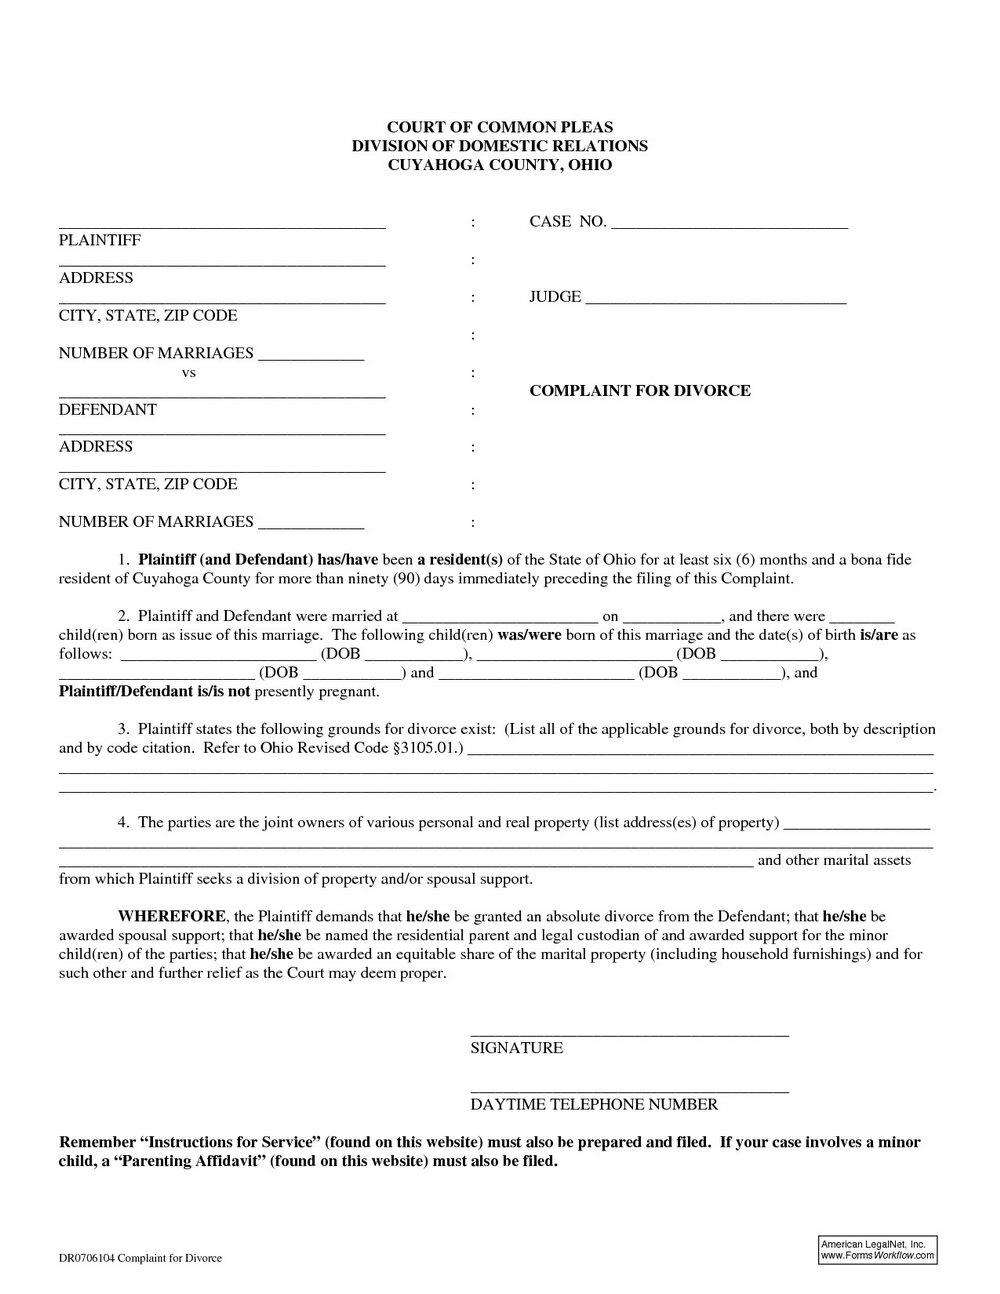 Ohio Divorce Forms